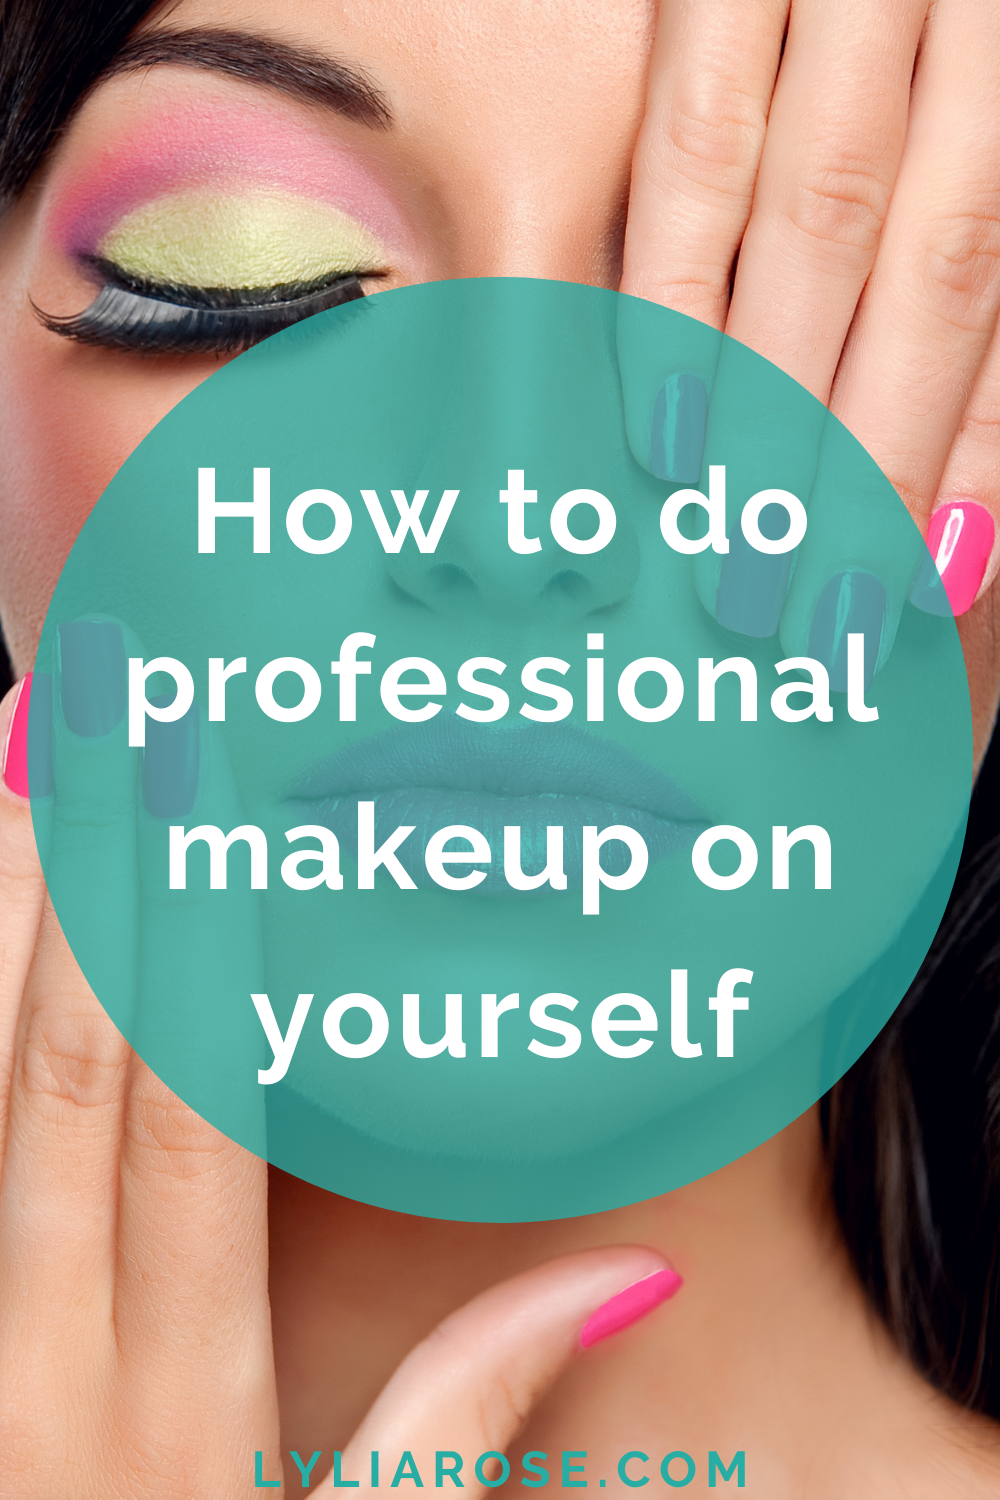 How to do professional makeup on yourself